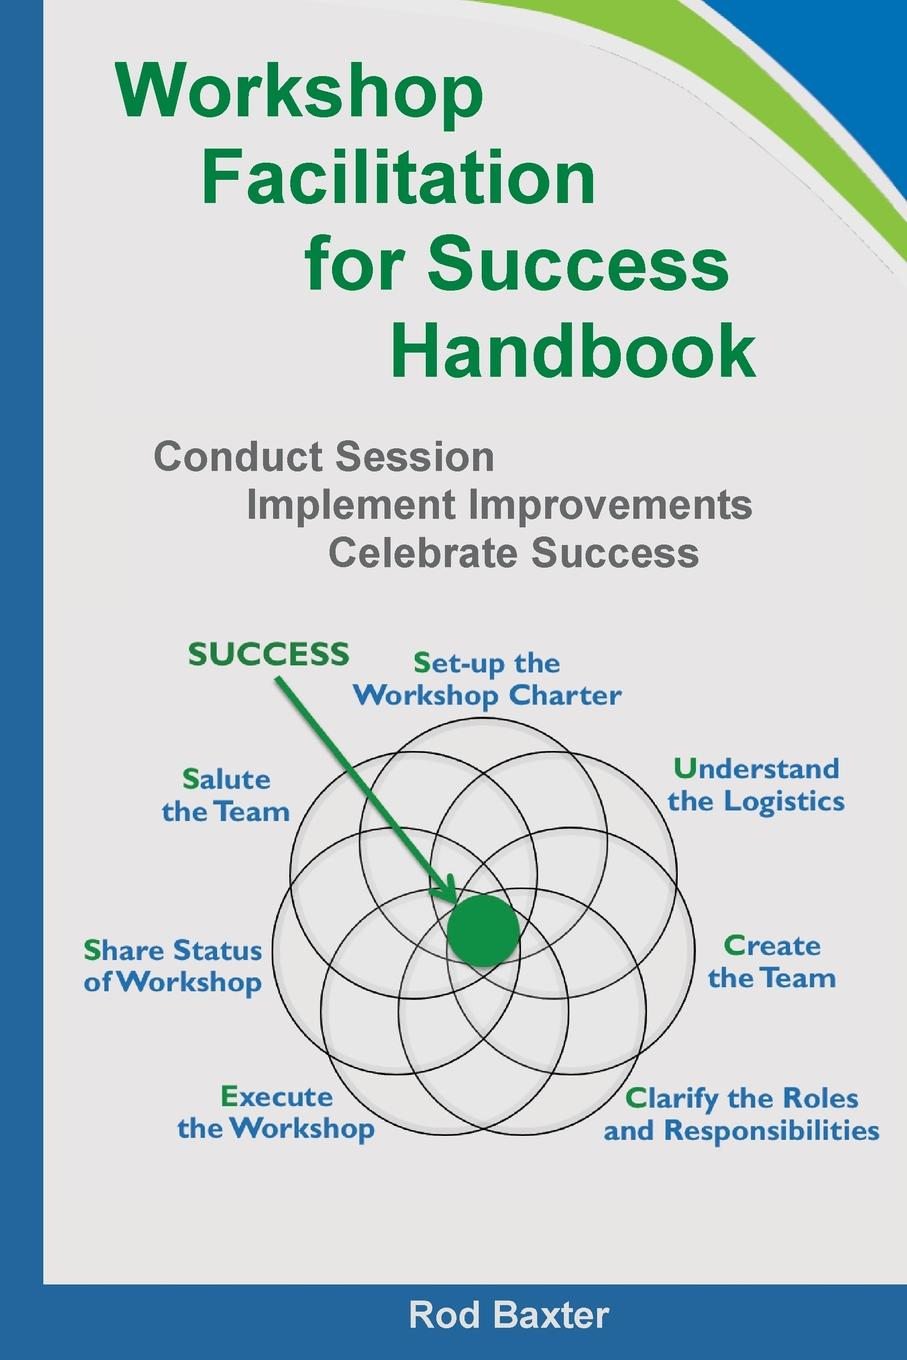 Workshop Facilitation for Success Handbook. Conduct Session - Implement Improvements - Celebrate Success This is a guide to workshop facilitation for success designed...